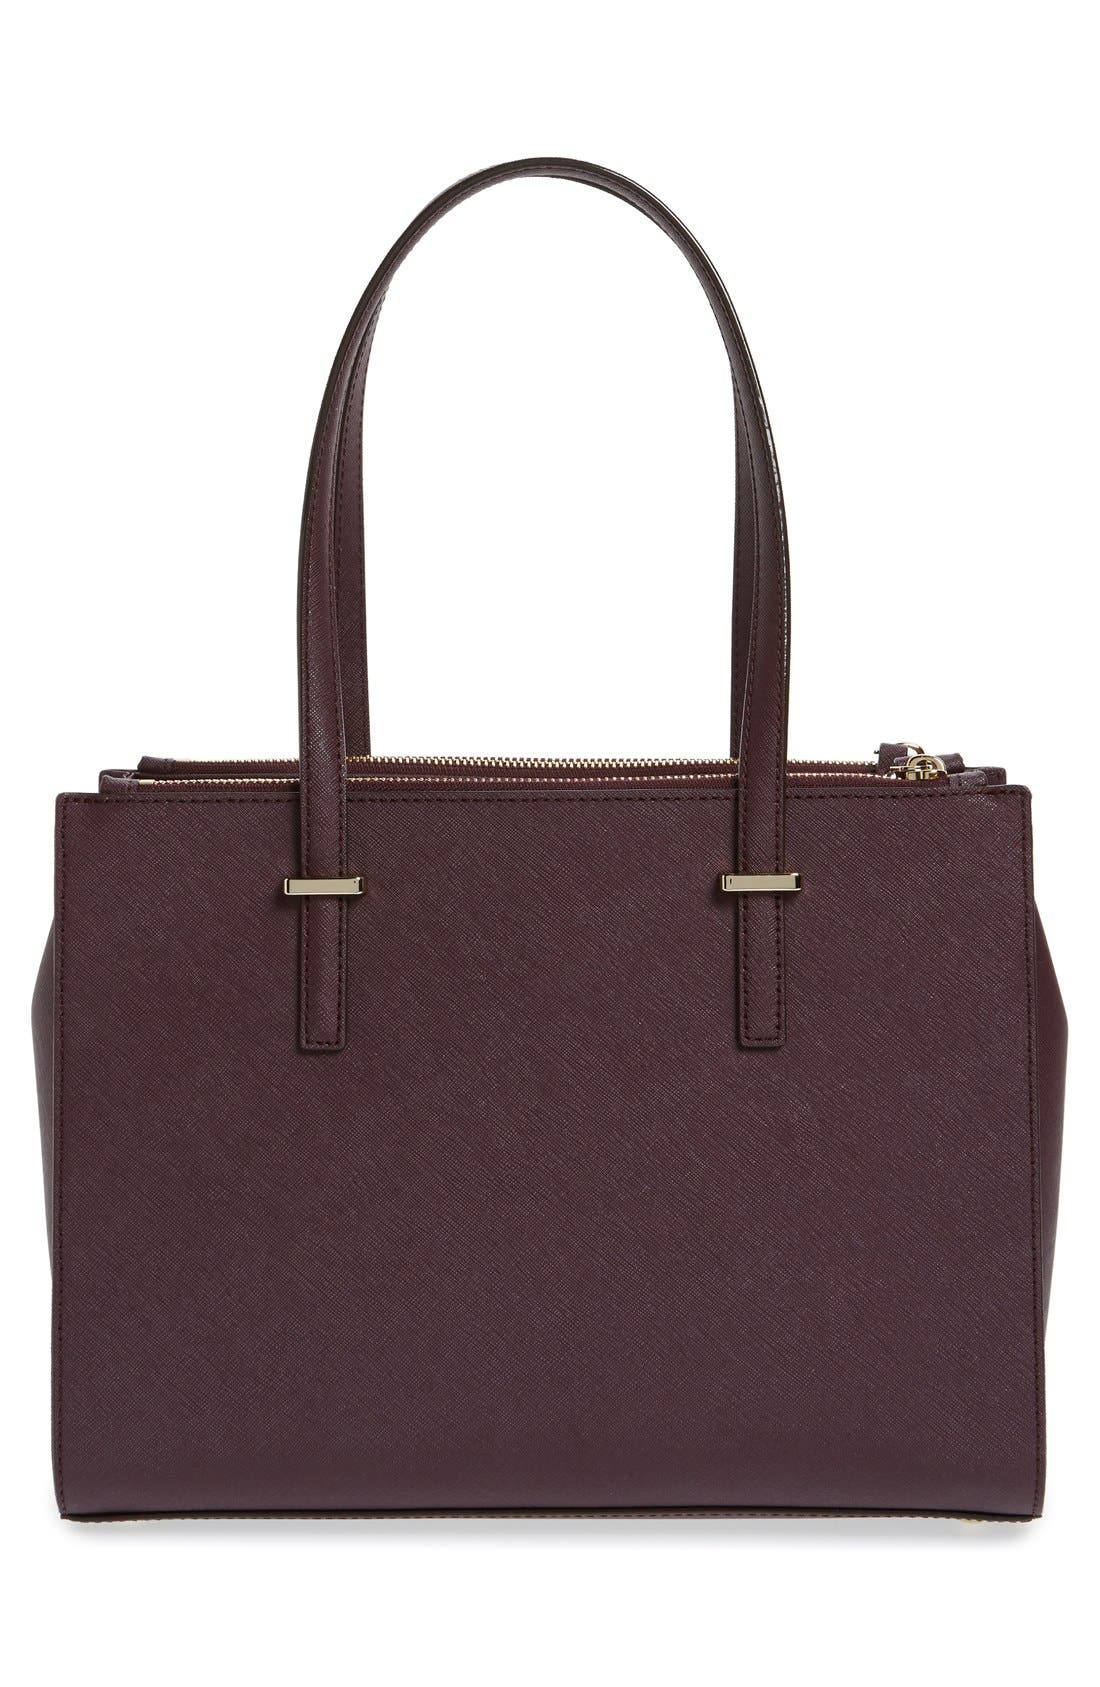 Alternate Image 3  - kate spade new york 'cedar street - small jensen' leather tote